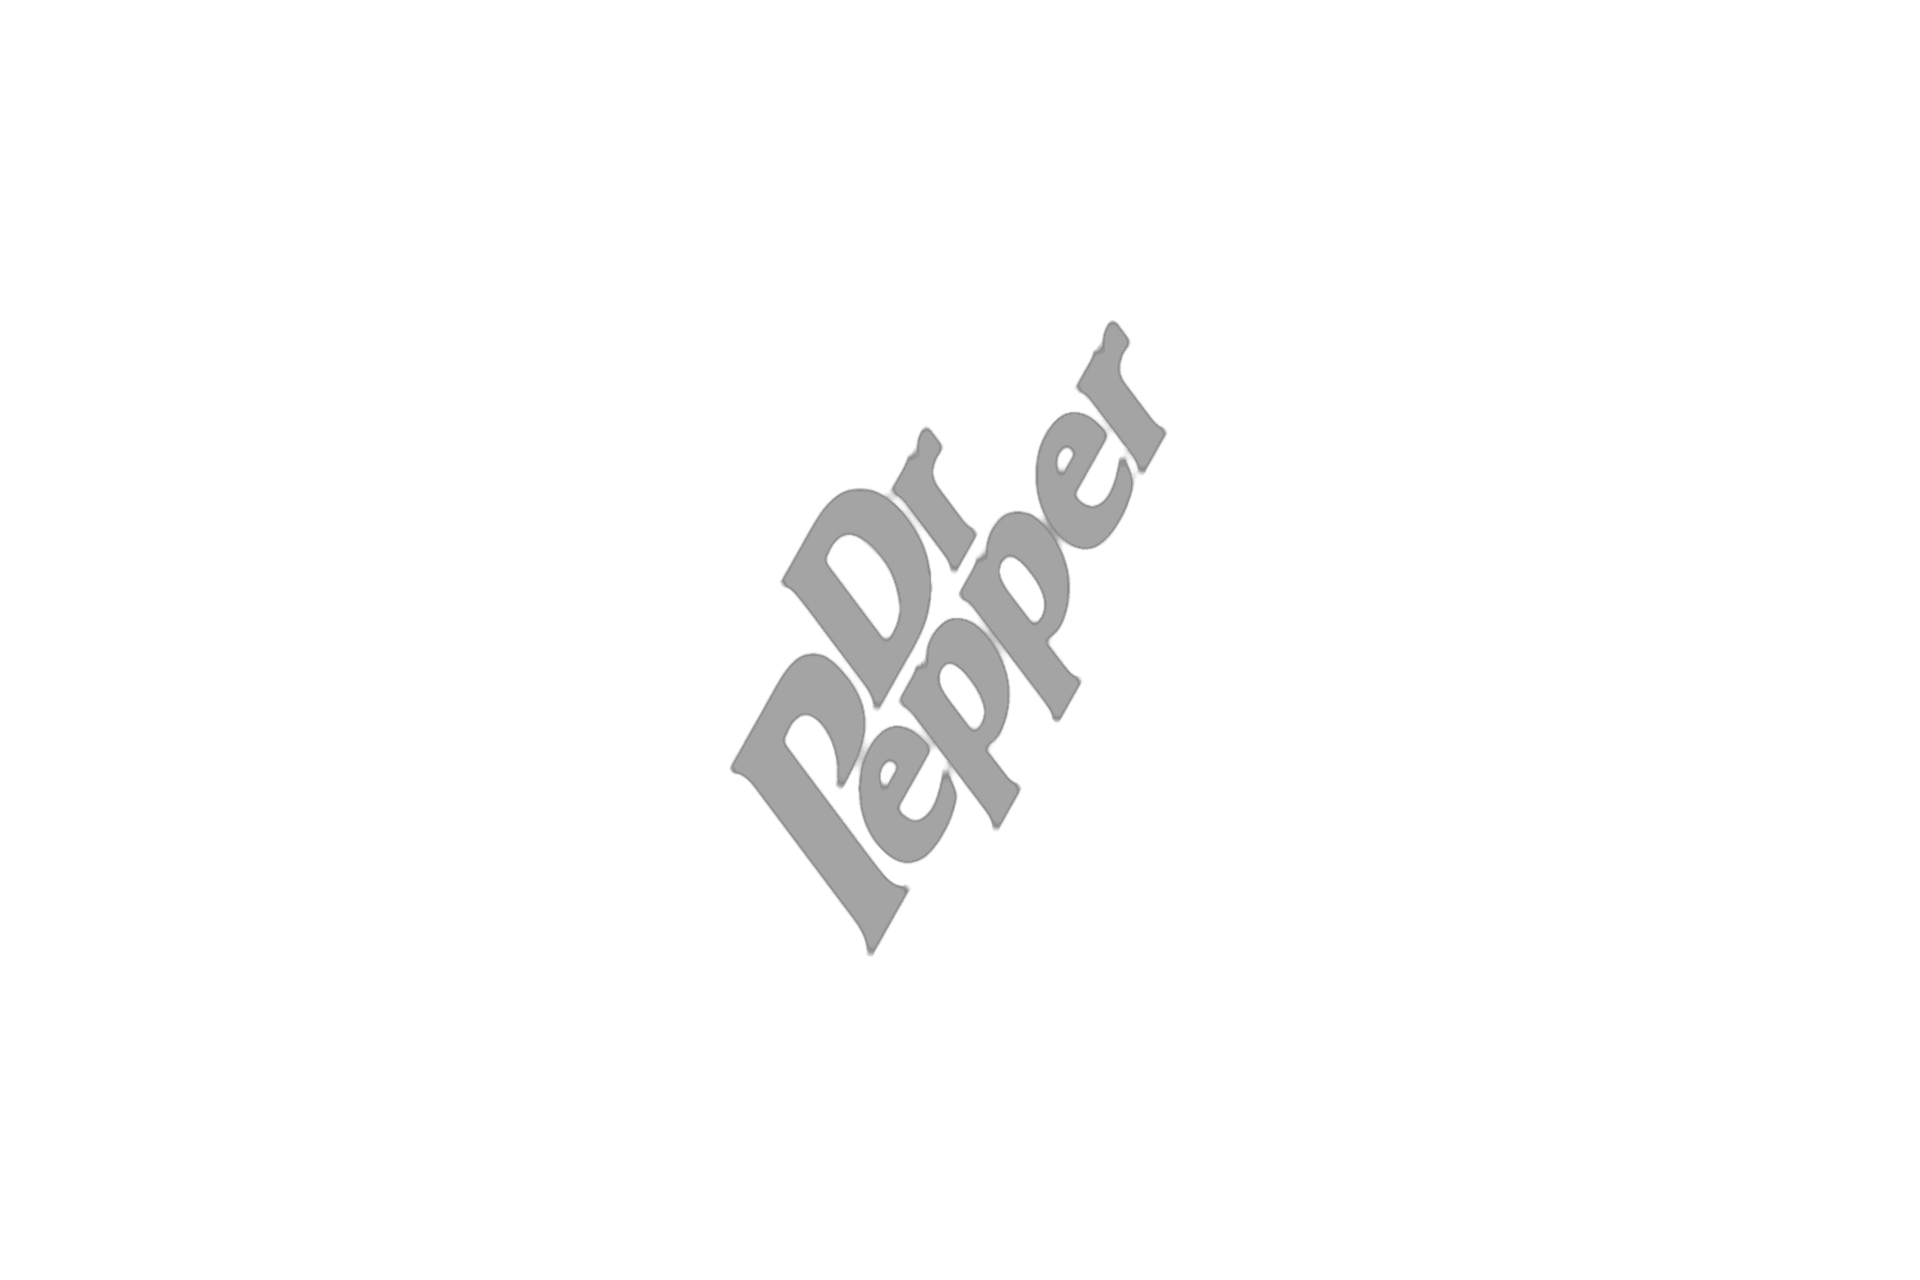 dr pepper logo grey